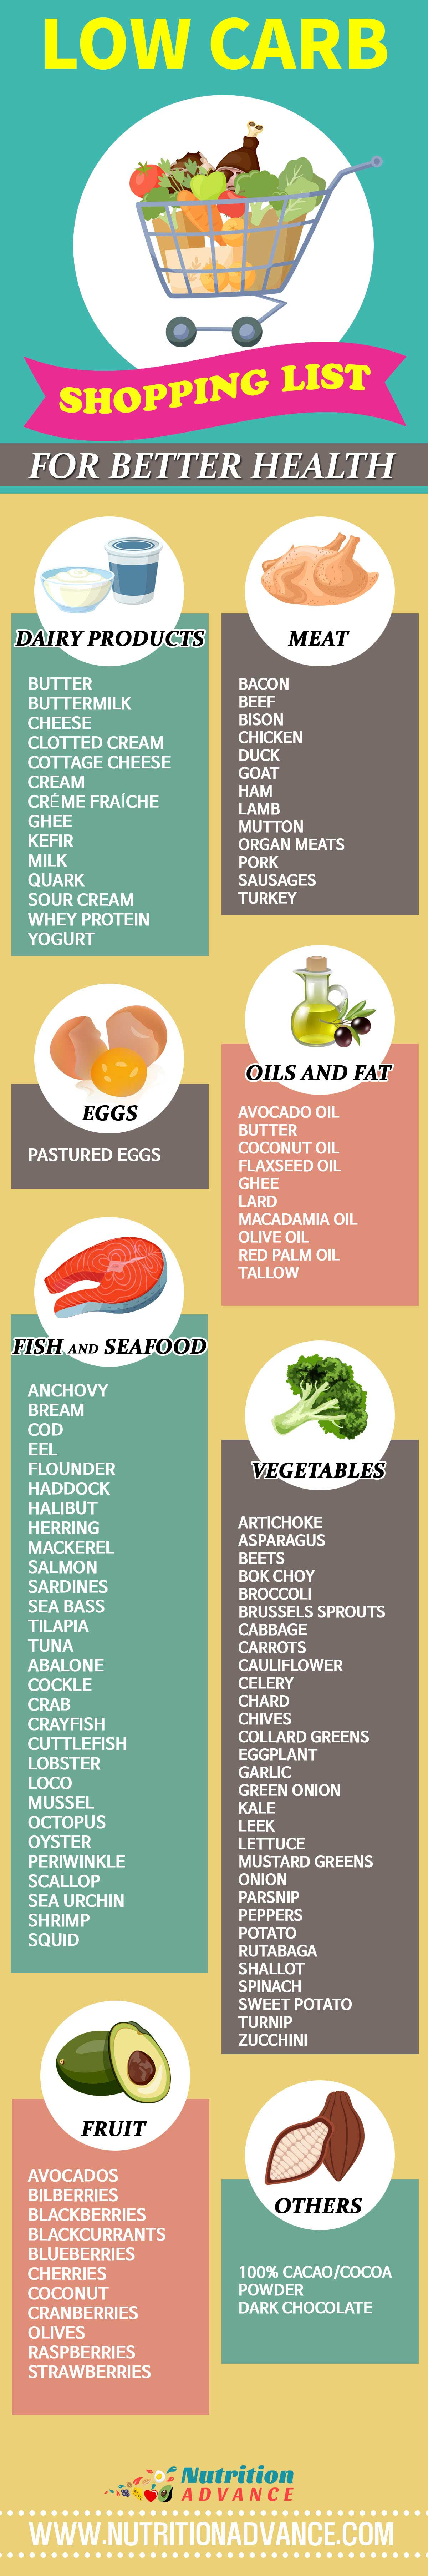 A Low Carb Shopping List For an LCHF Diet